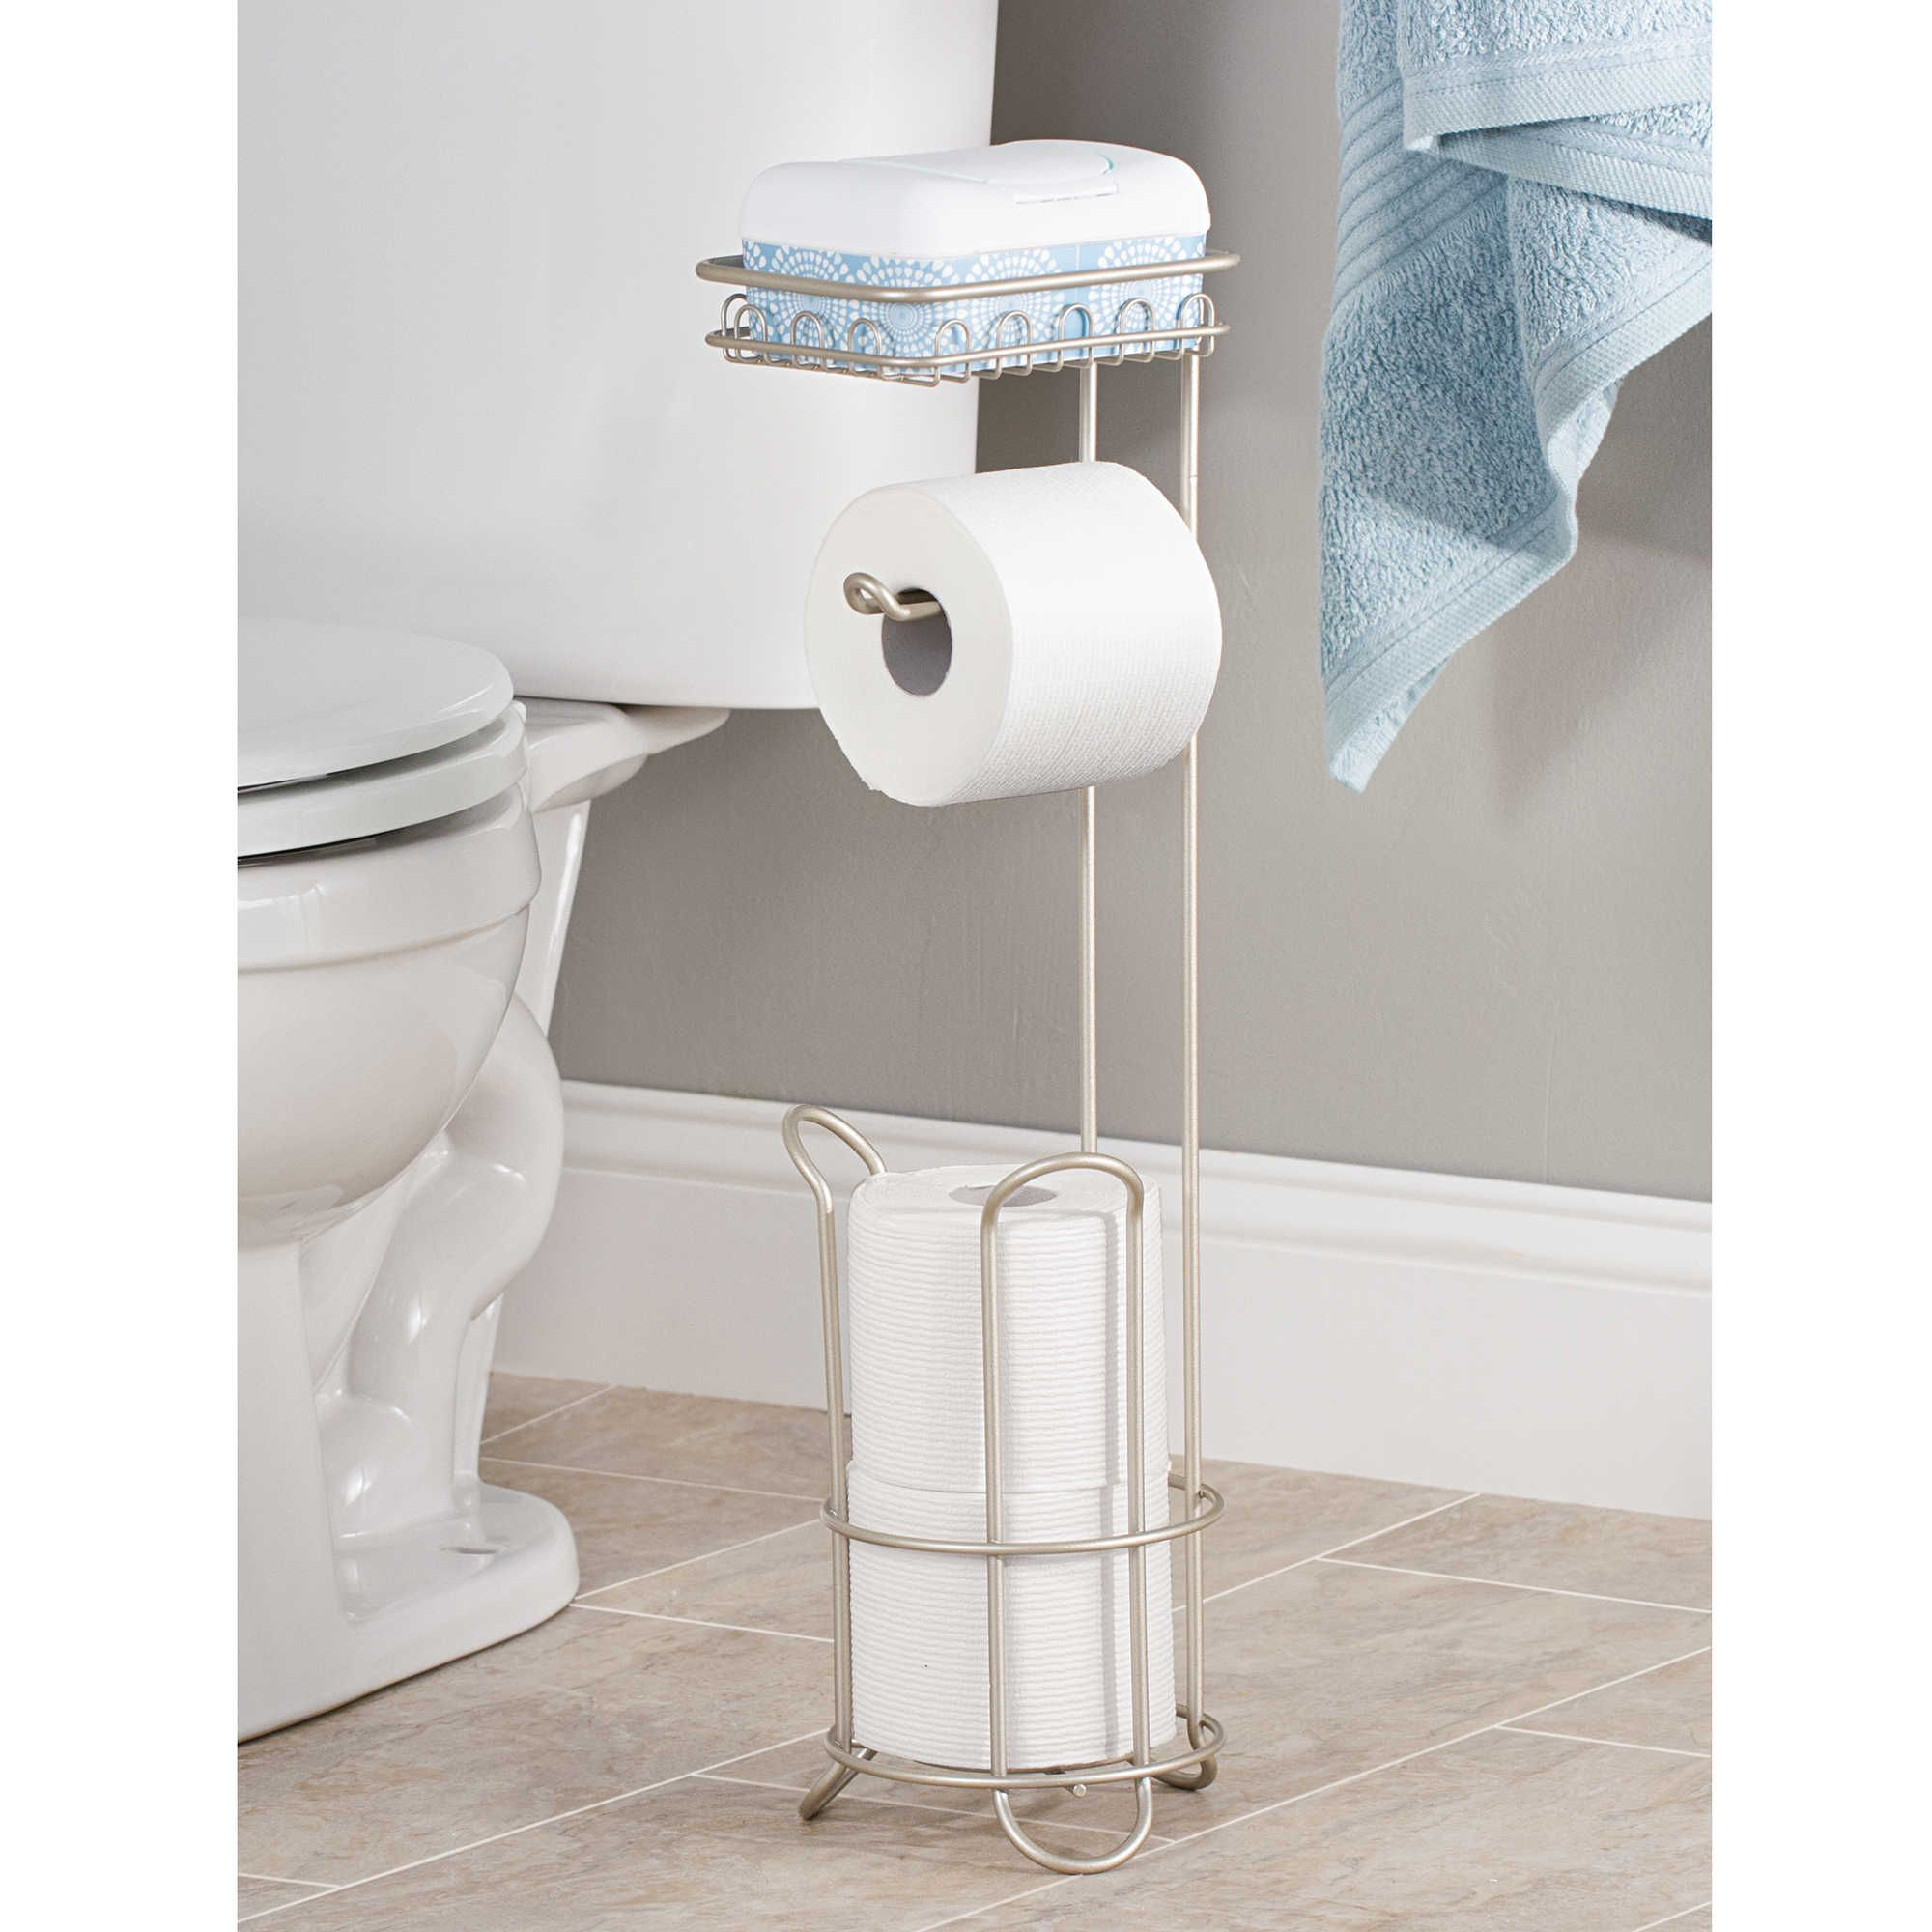 I Love That This Has A Place For Your Wet Wipes Erin Interdesign Classico Roll Toil Toilet Paper Stand Toilet Paper Free Standing Toilet Paper Holder